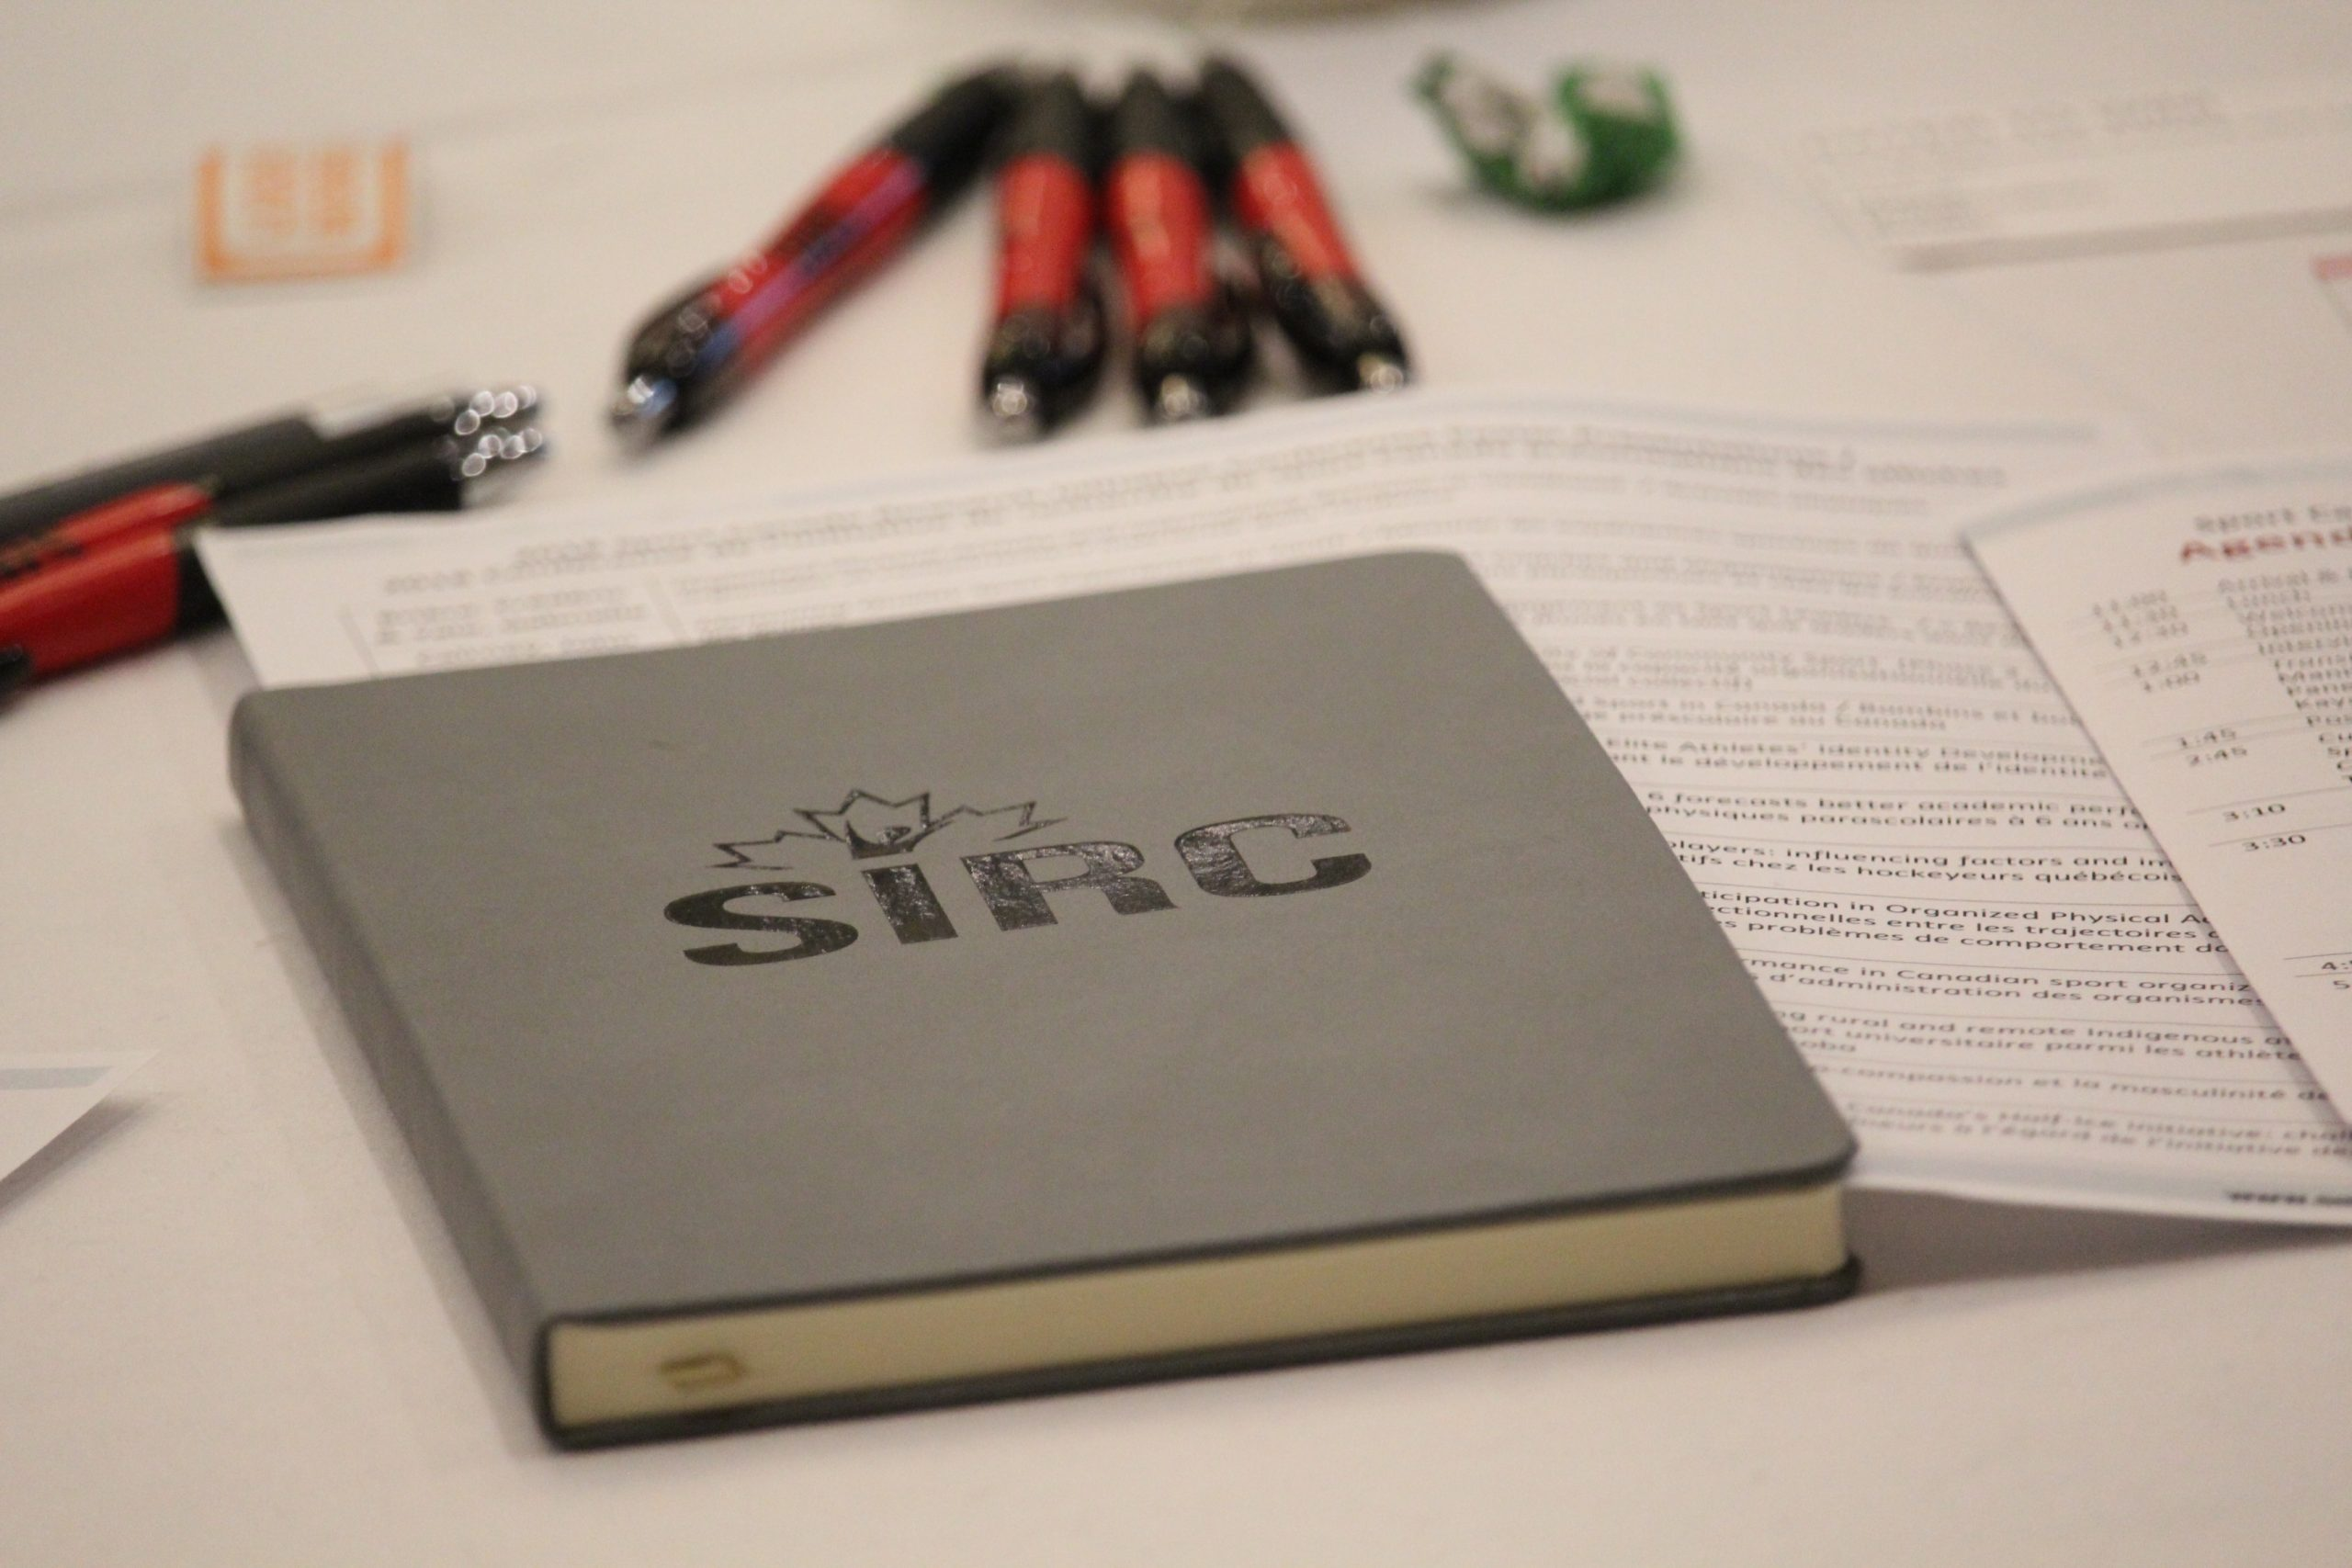 SIRC notebook and pens